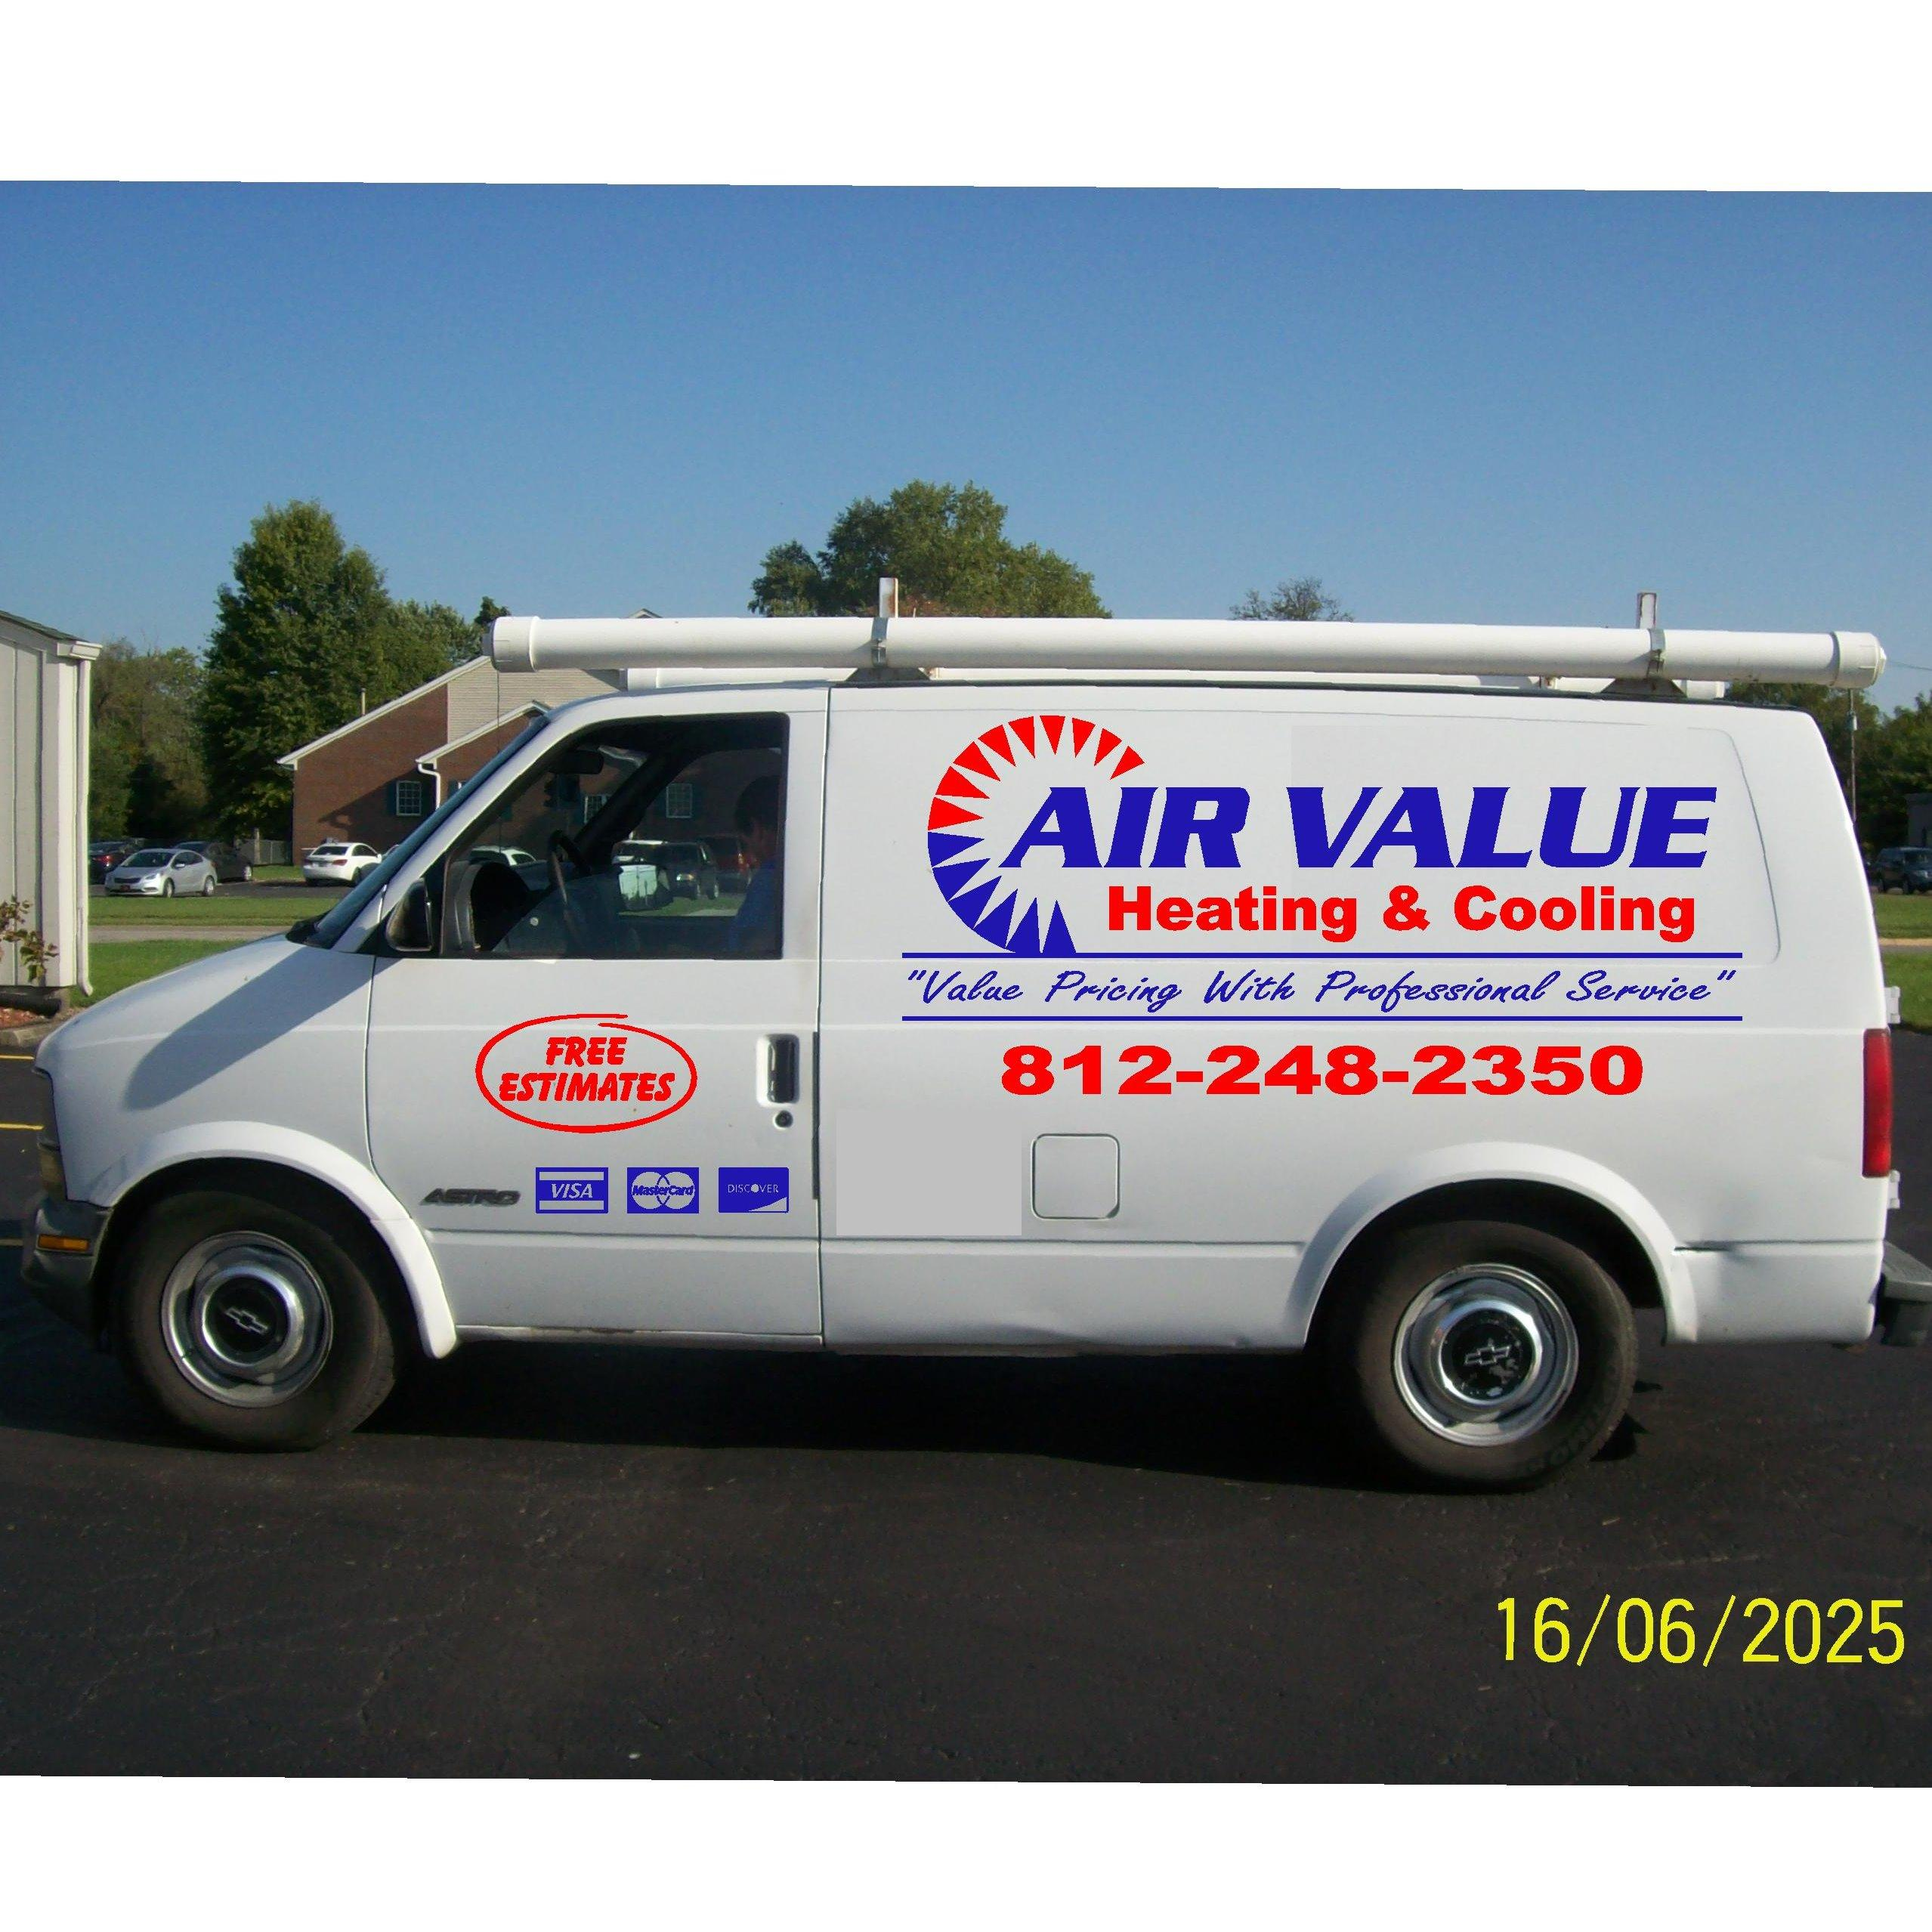 Air Value Heating & Cooling